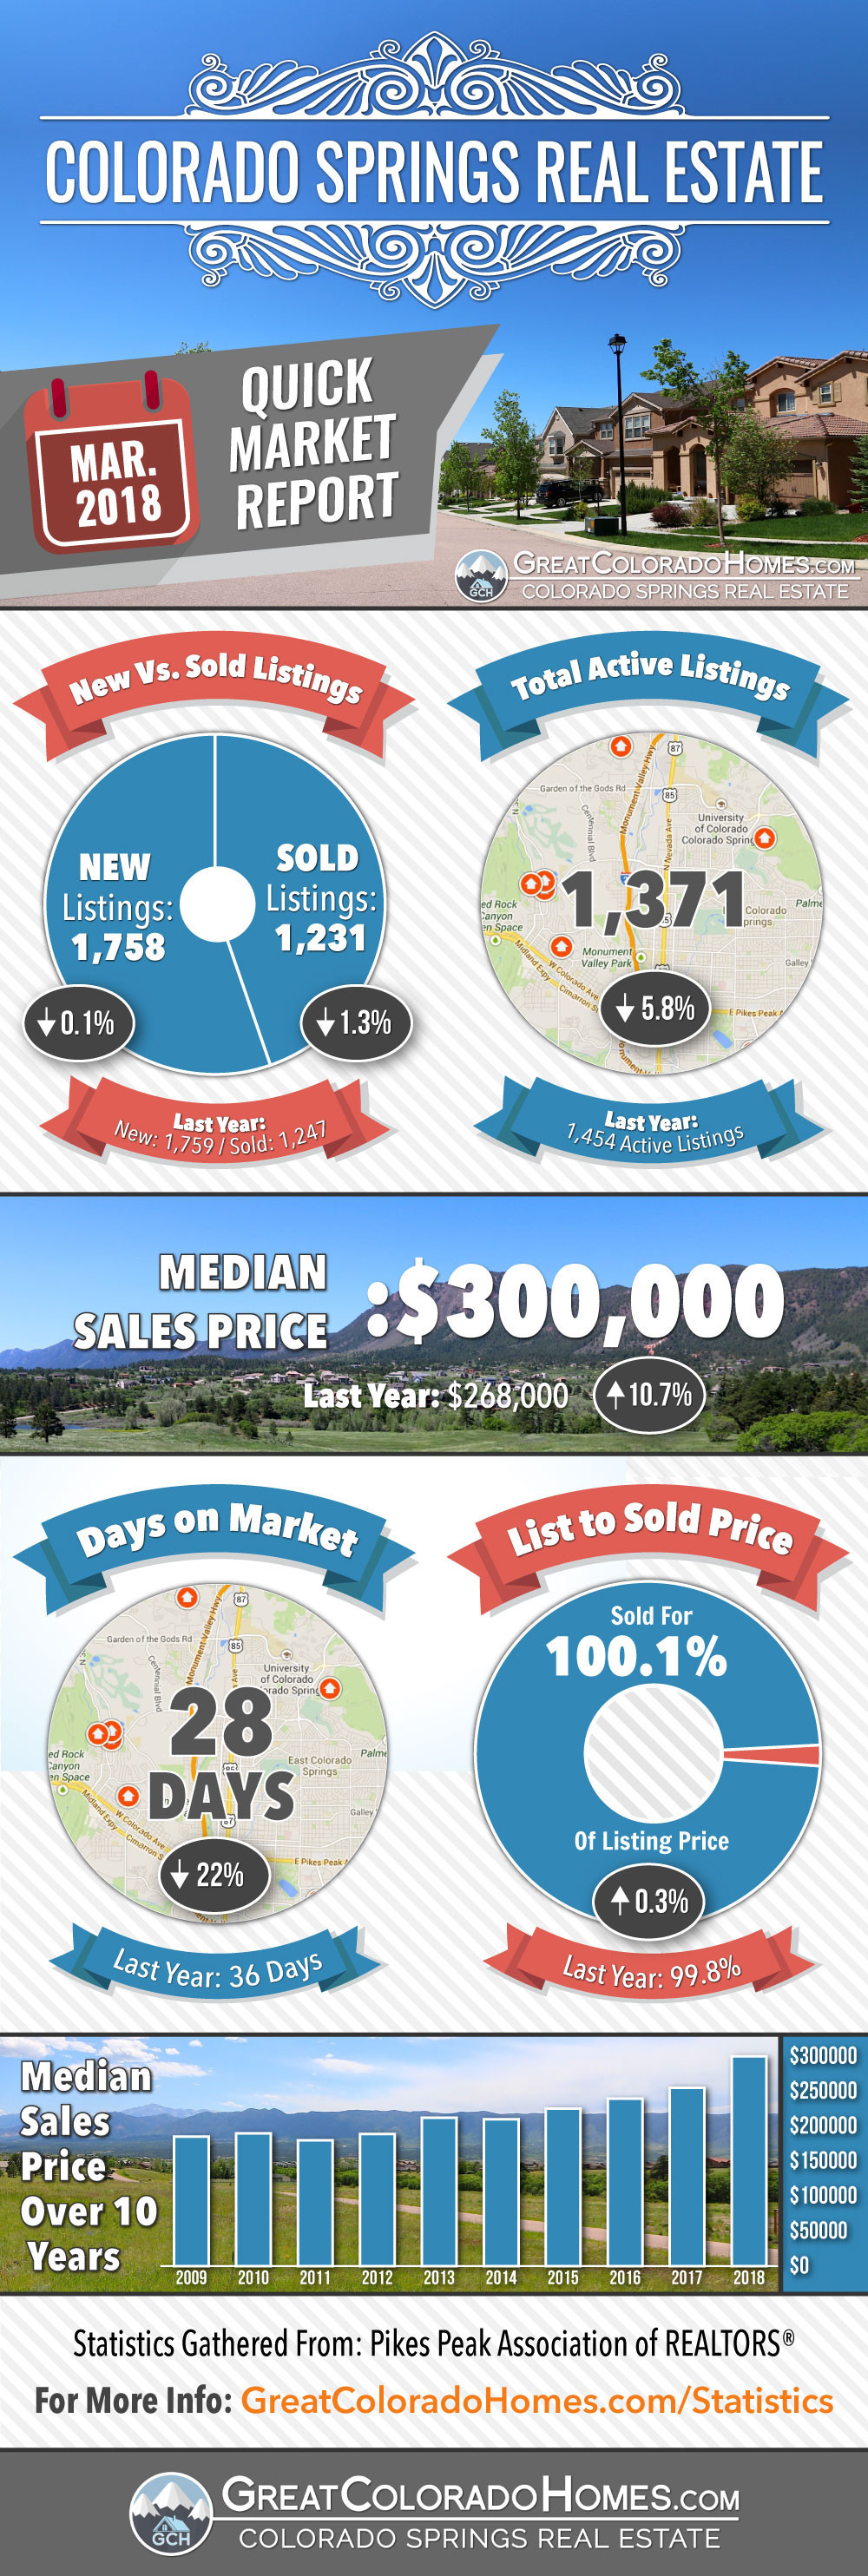 March 2018 Colorado Springs Real Estate Market Statistics Infographic